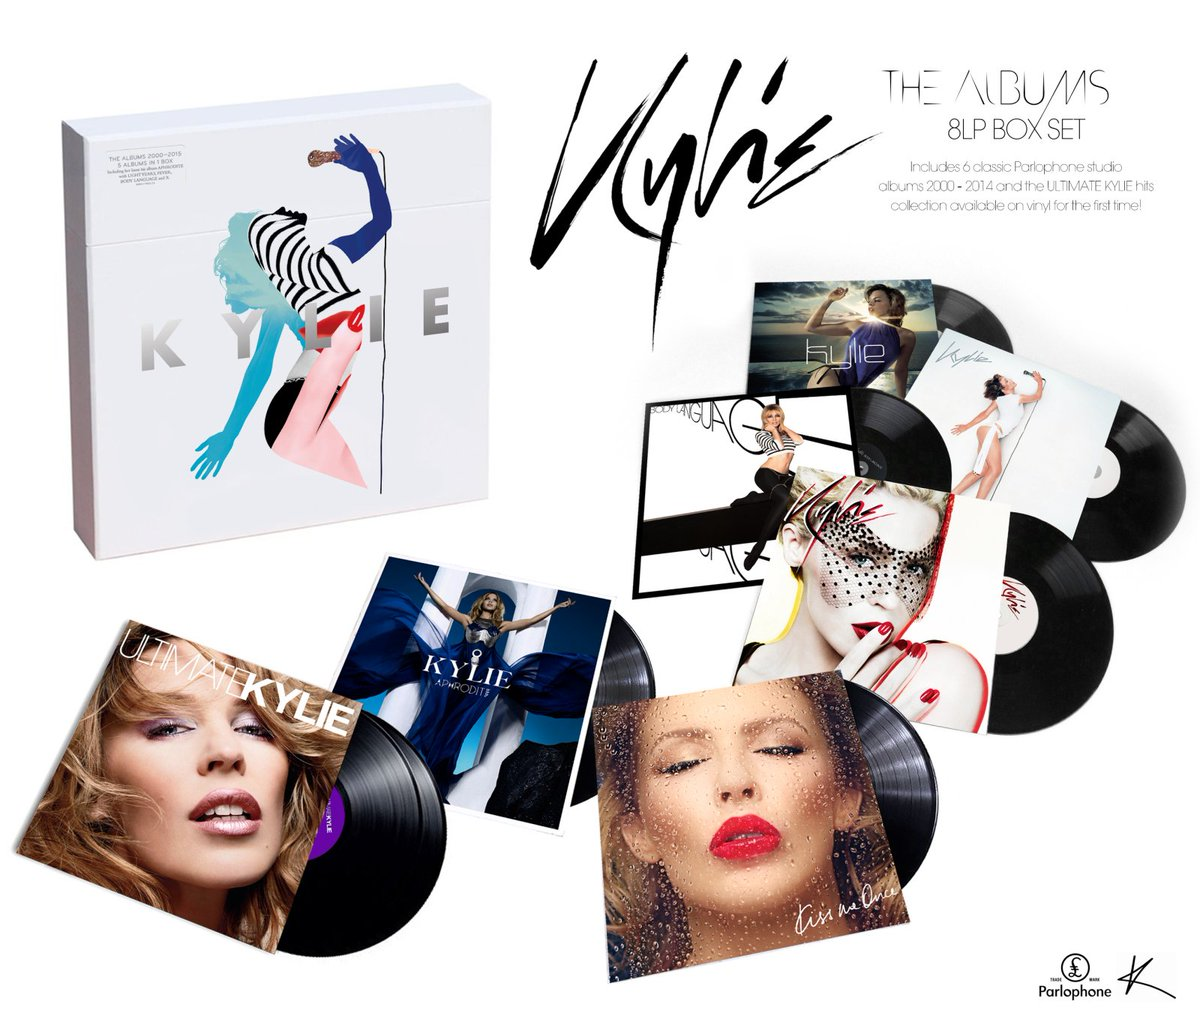 Rober Magic Kyliedisco Lightyears20 On Twitter I Don T Know Who Did This But It S Exactly What We Need Kyliegoldenyears Lightyears Fever Bodylanguage X Aphrodite Kissmeonce Ultimate Release The Princess Of Pop S Albums